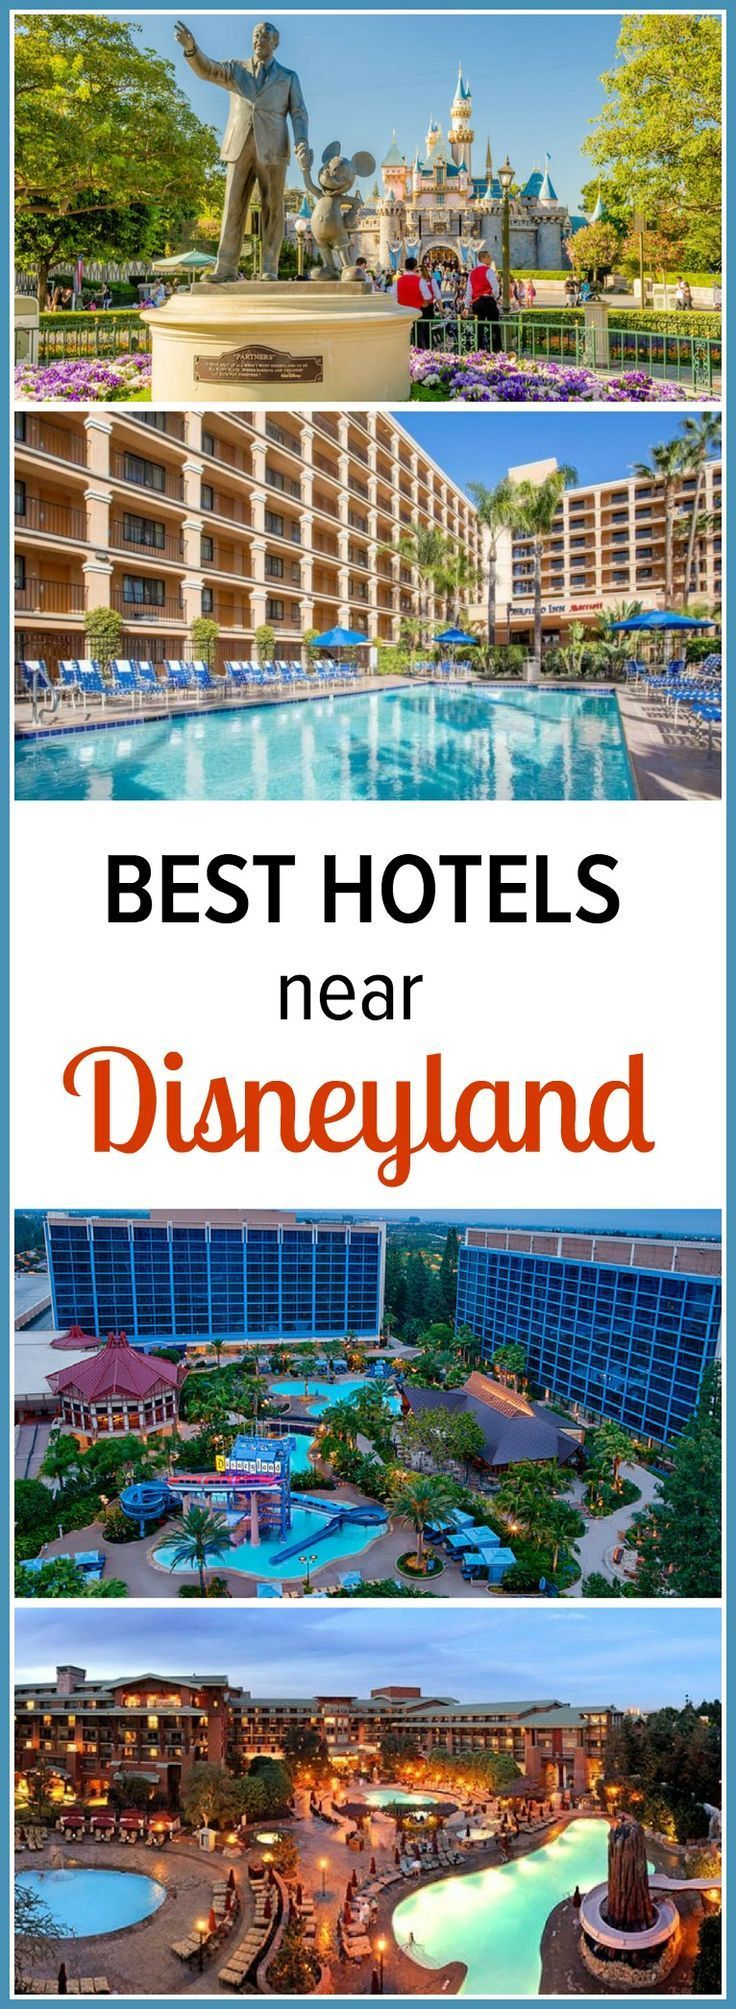 Luxury Hotels Anaheim Near Disneyland